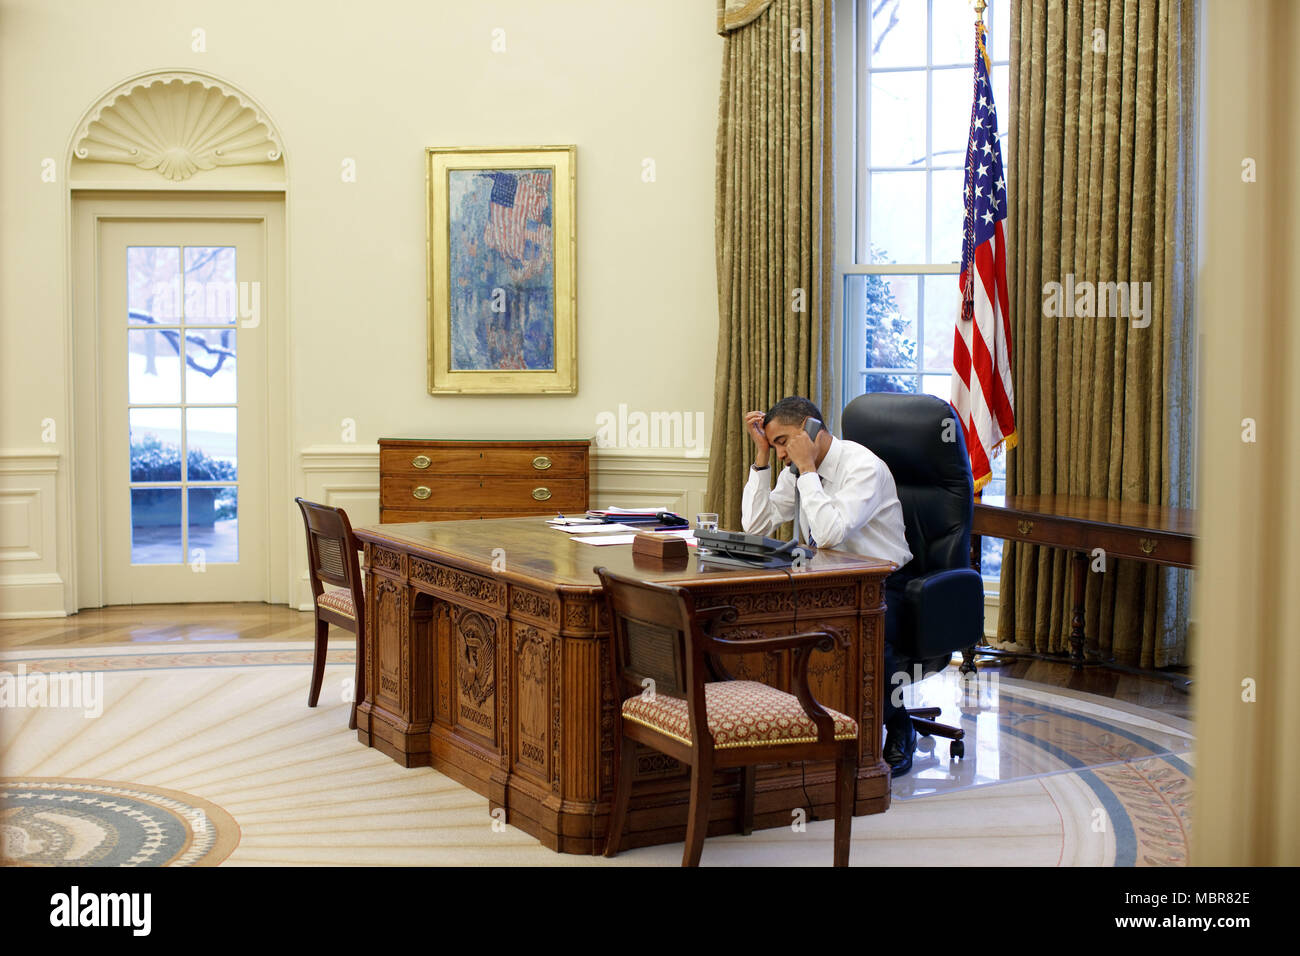 President Barack Obama In The Oval Office 1 28 09 Official White House Photo By Pete Souza Stock Photo Alamy